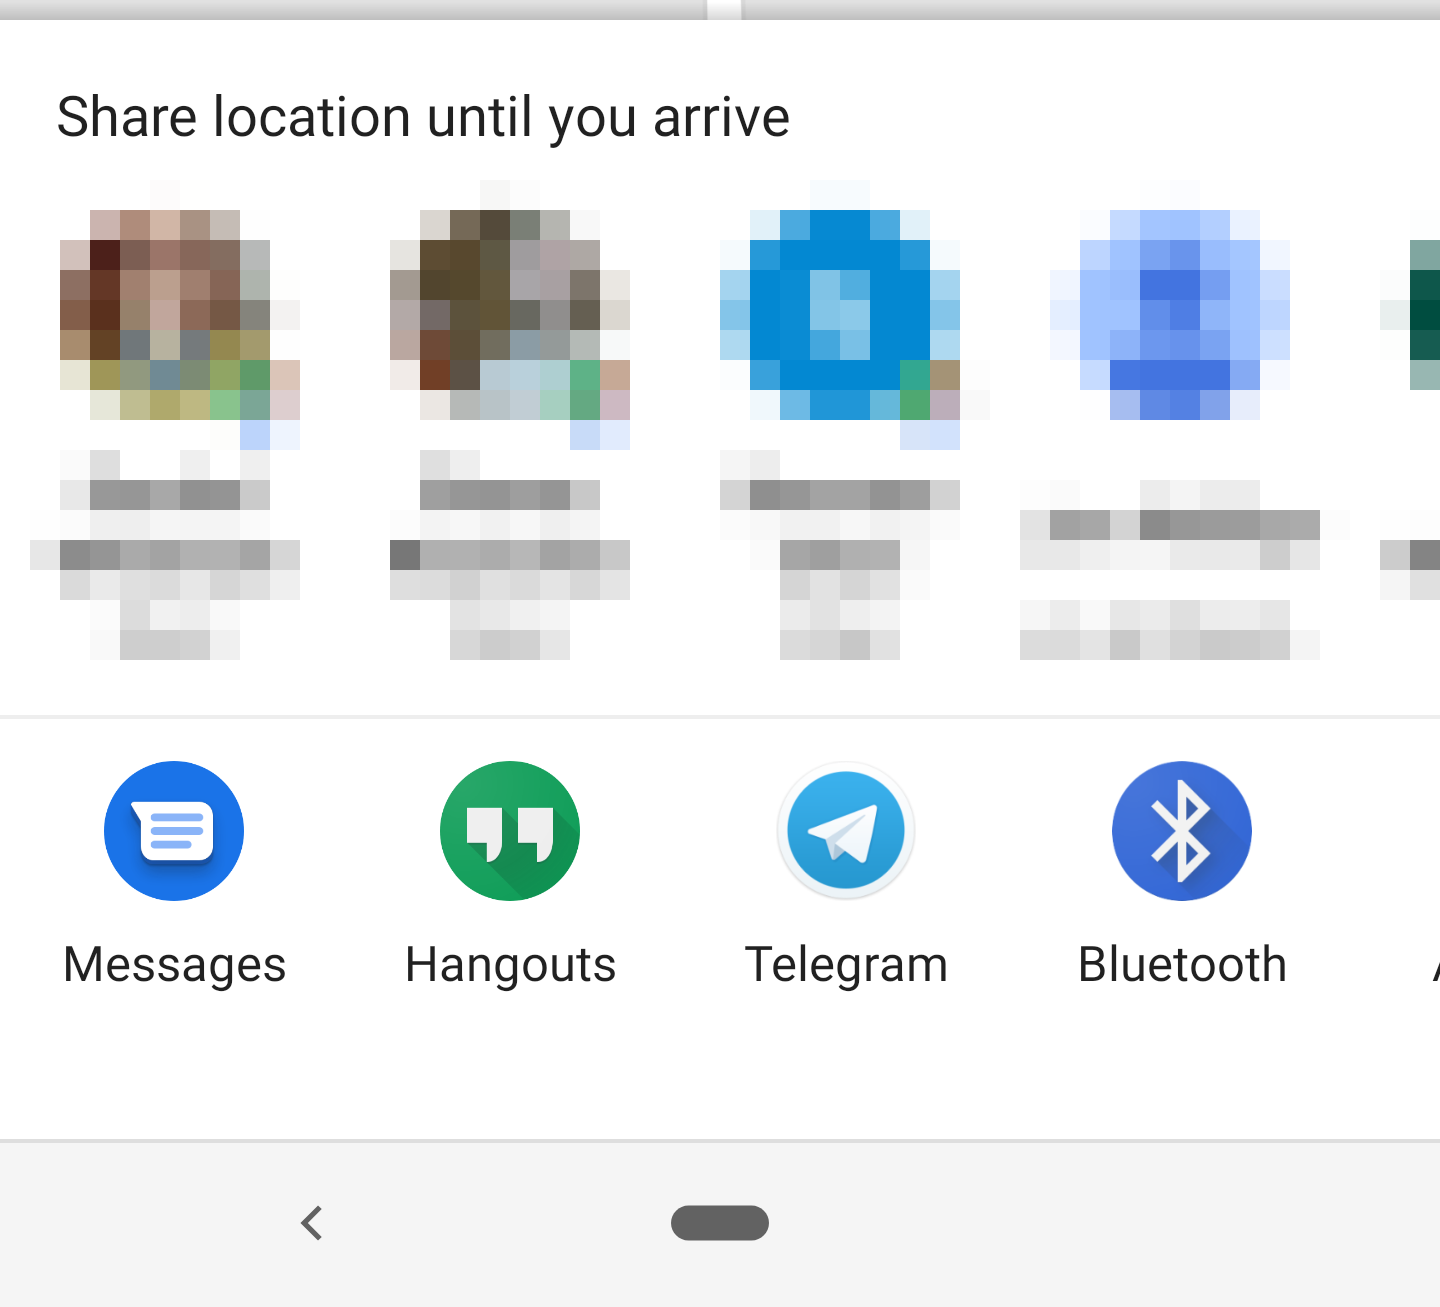 Google Maps Brings Real-Time ETA 'Journey Sharing' to iOS